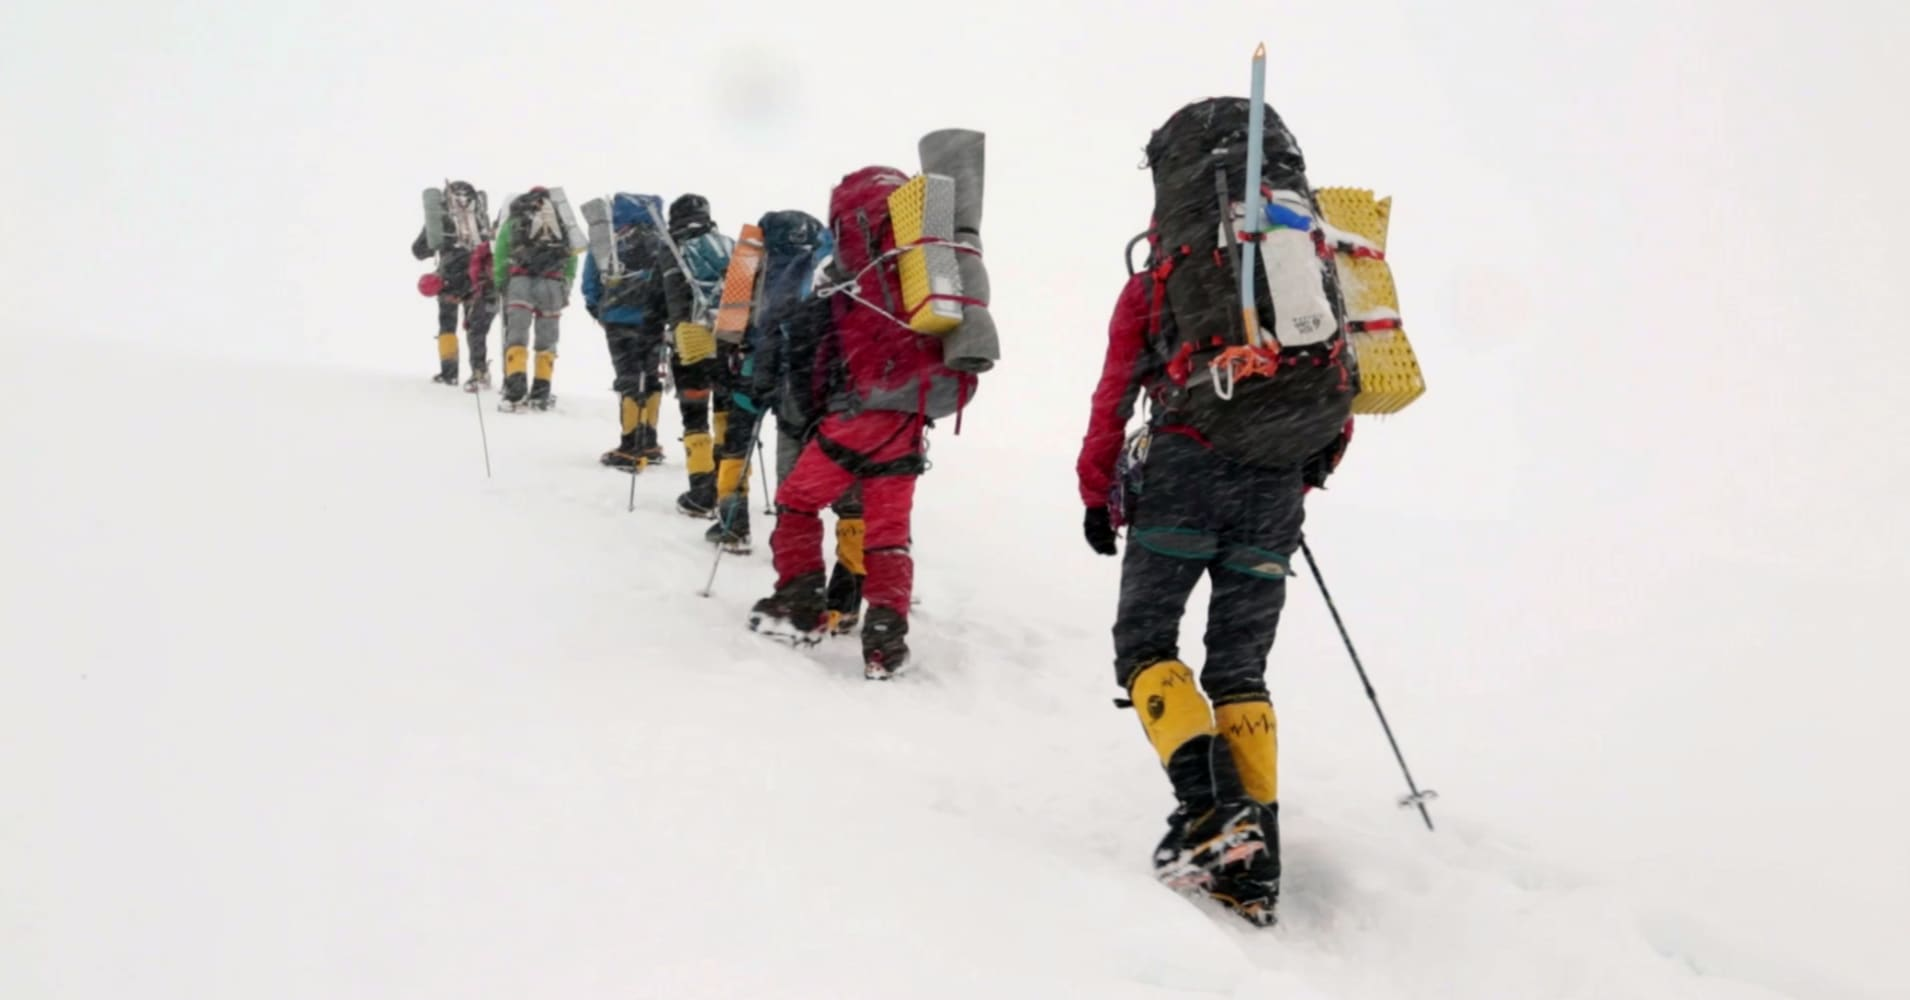 Meet a guide who earns $100,000 a year bringing climbers up the world's most dangerous peaks